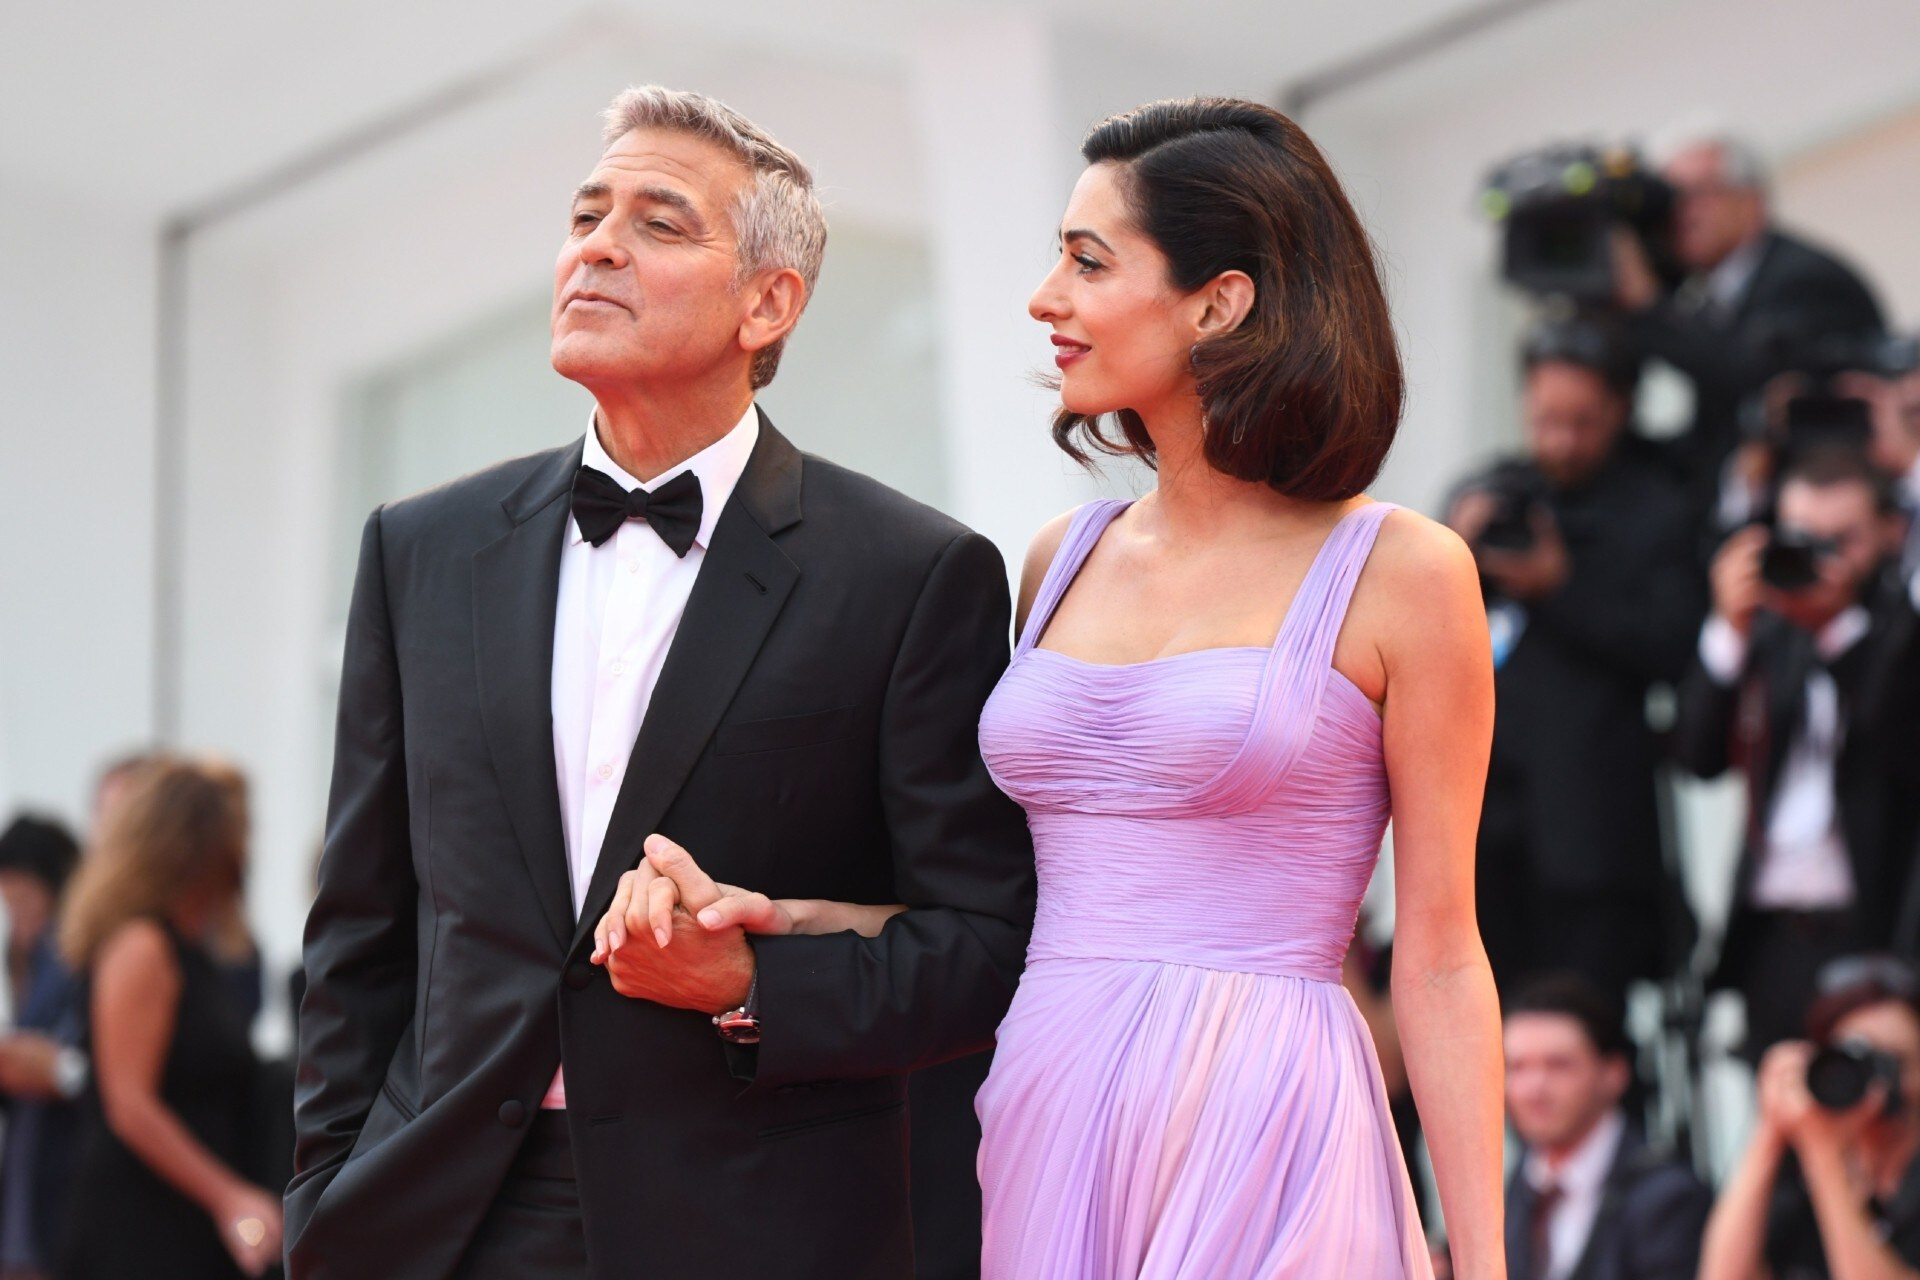 Exclusive: Get Amal Clooneys Wavy Bob From The Venice Film Festival Exclusive: Get Amal Clooneys Wavy Bob From The Venice Film Festival new photo